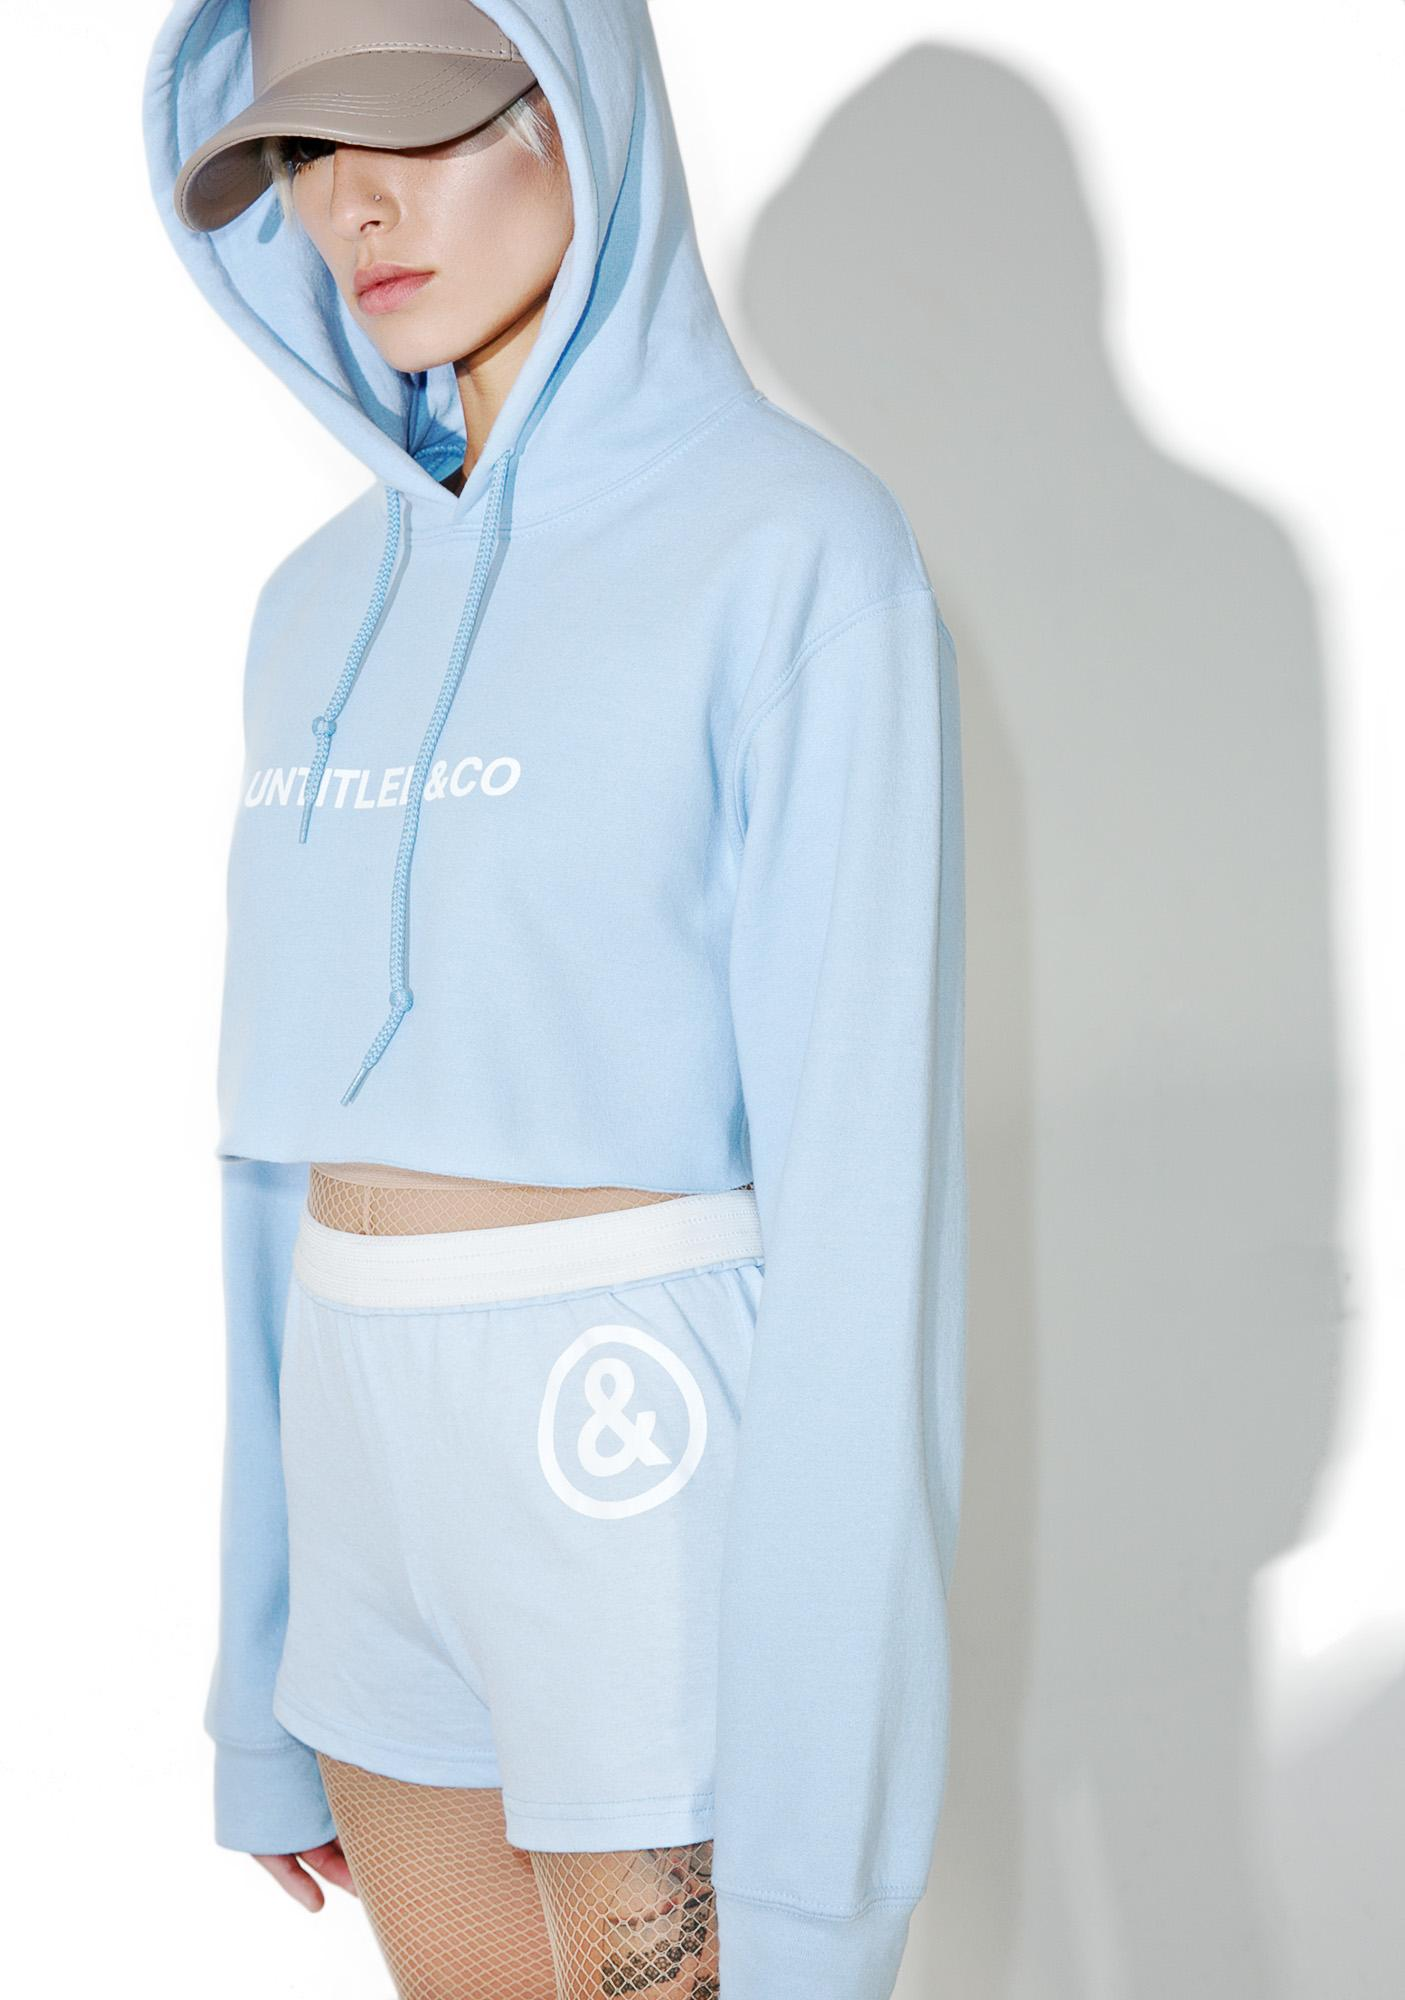 We have a variety of Baby Blue Sweatshirts & Hoodies and hoodies to fit your fashion needs. Tell the world how you feel or rock a funny saying with your outerwear. Baby Blue Sweatshirts & Hoodies and hoodies are great gifts for any occasion.